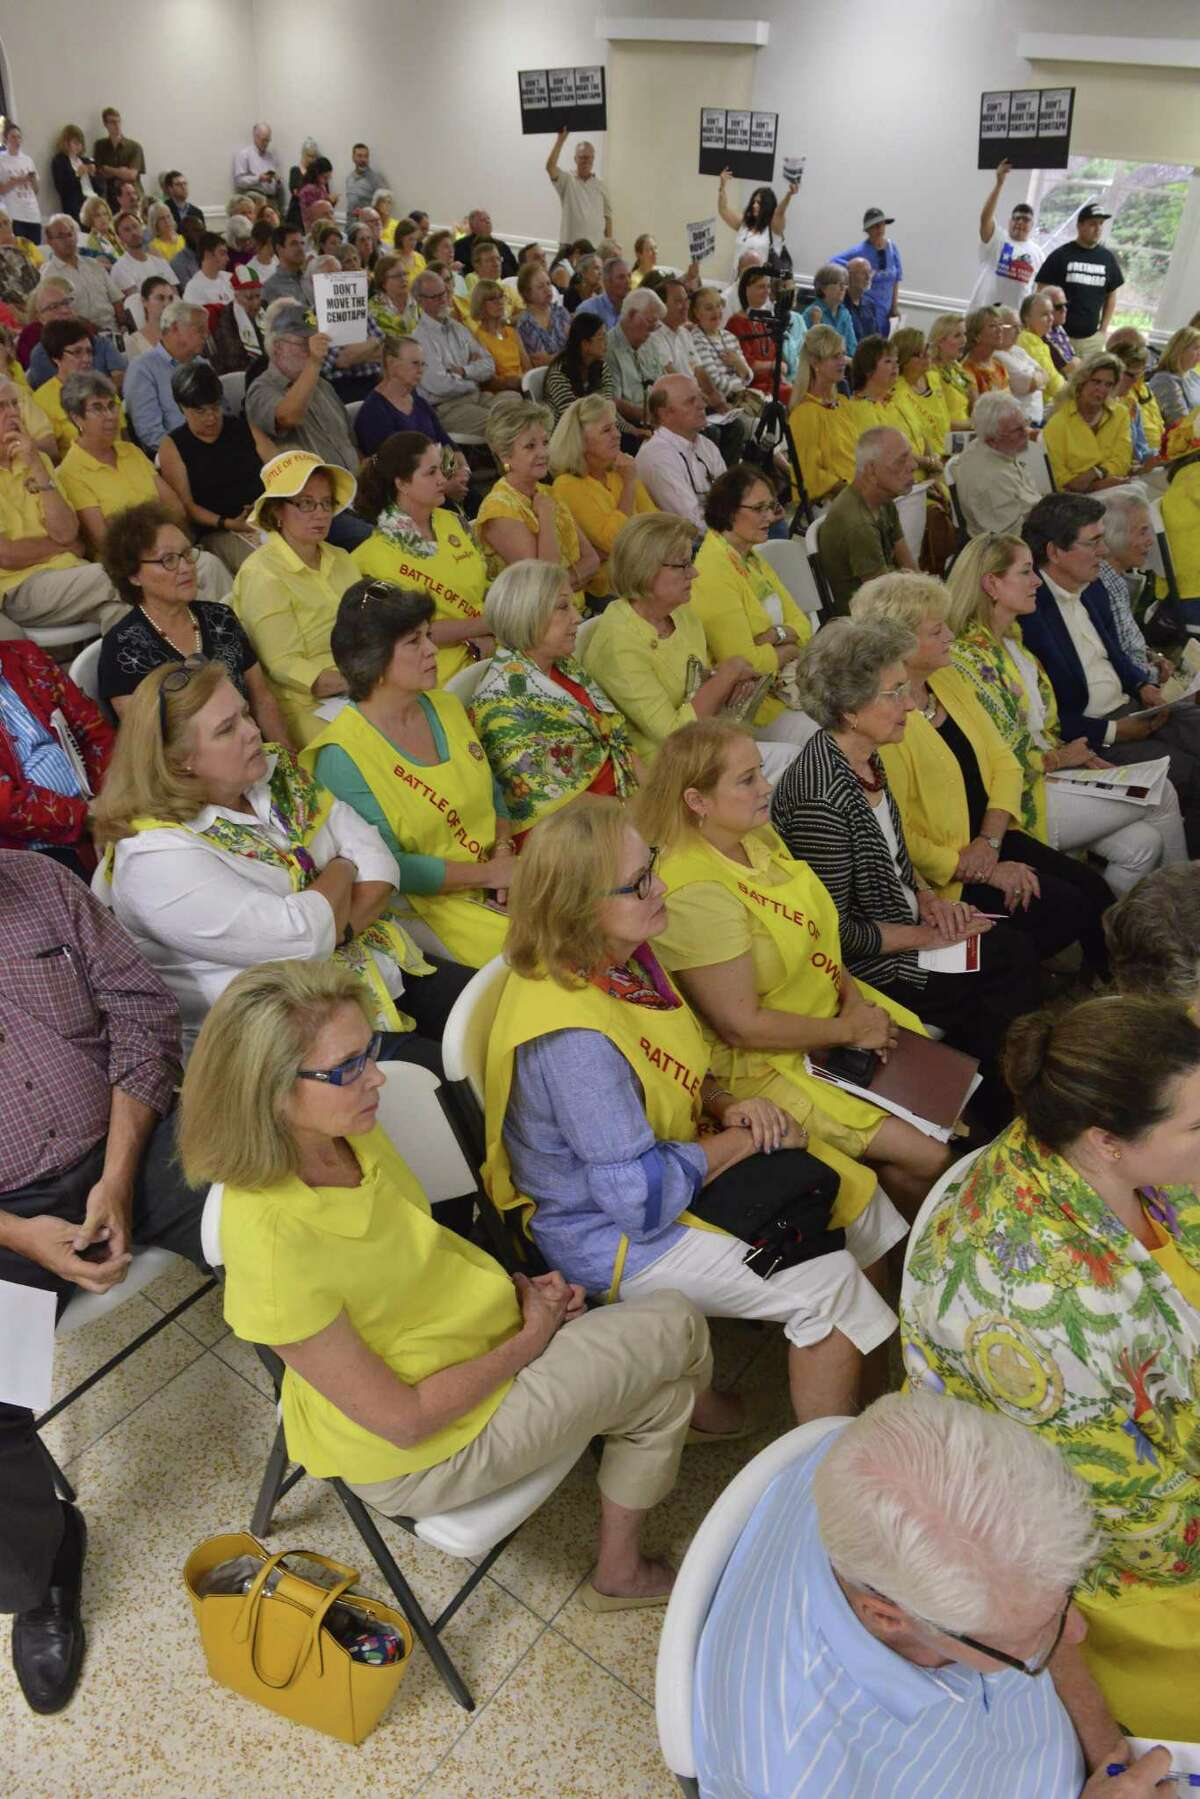 Organizers and volunteers of the Battle of Flowers parade listen to a presentation on the Alamo project Thursday evening. The group is opposed to closing Alamo Street.